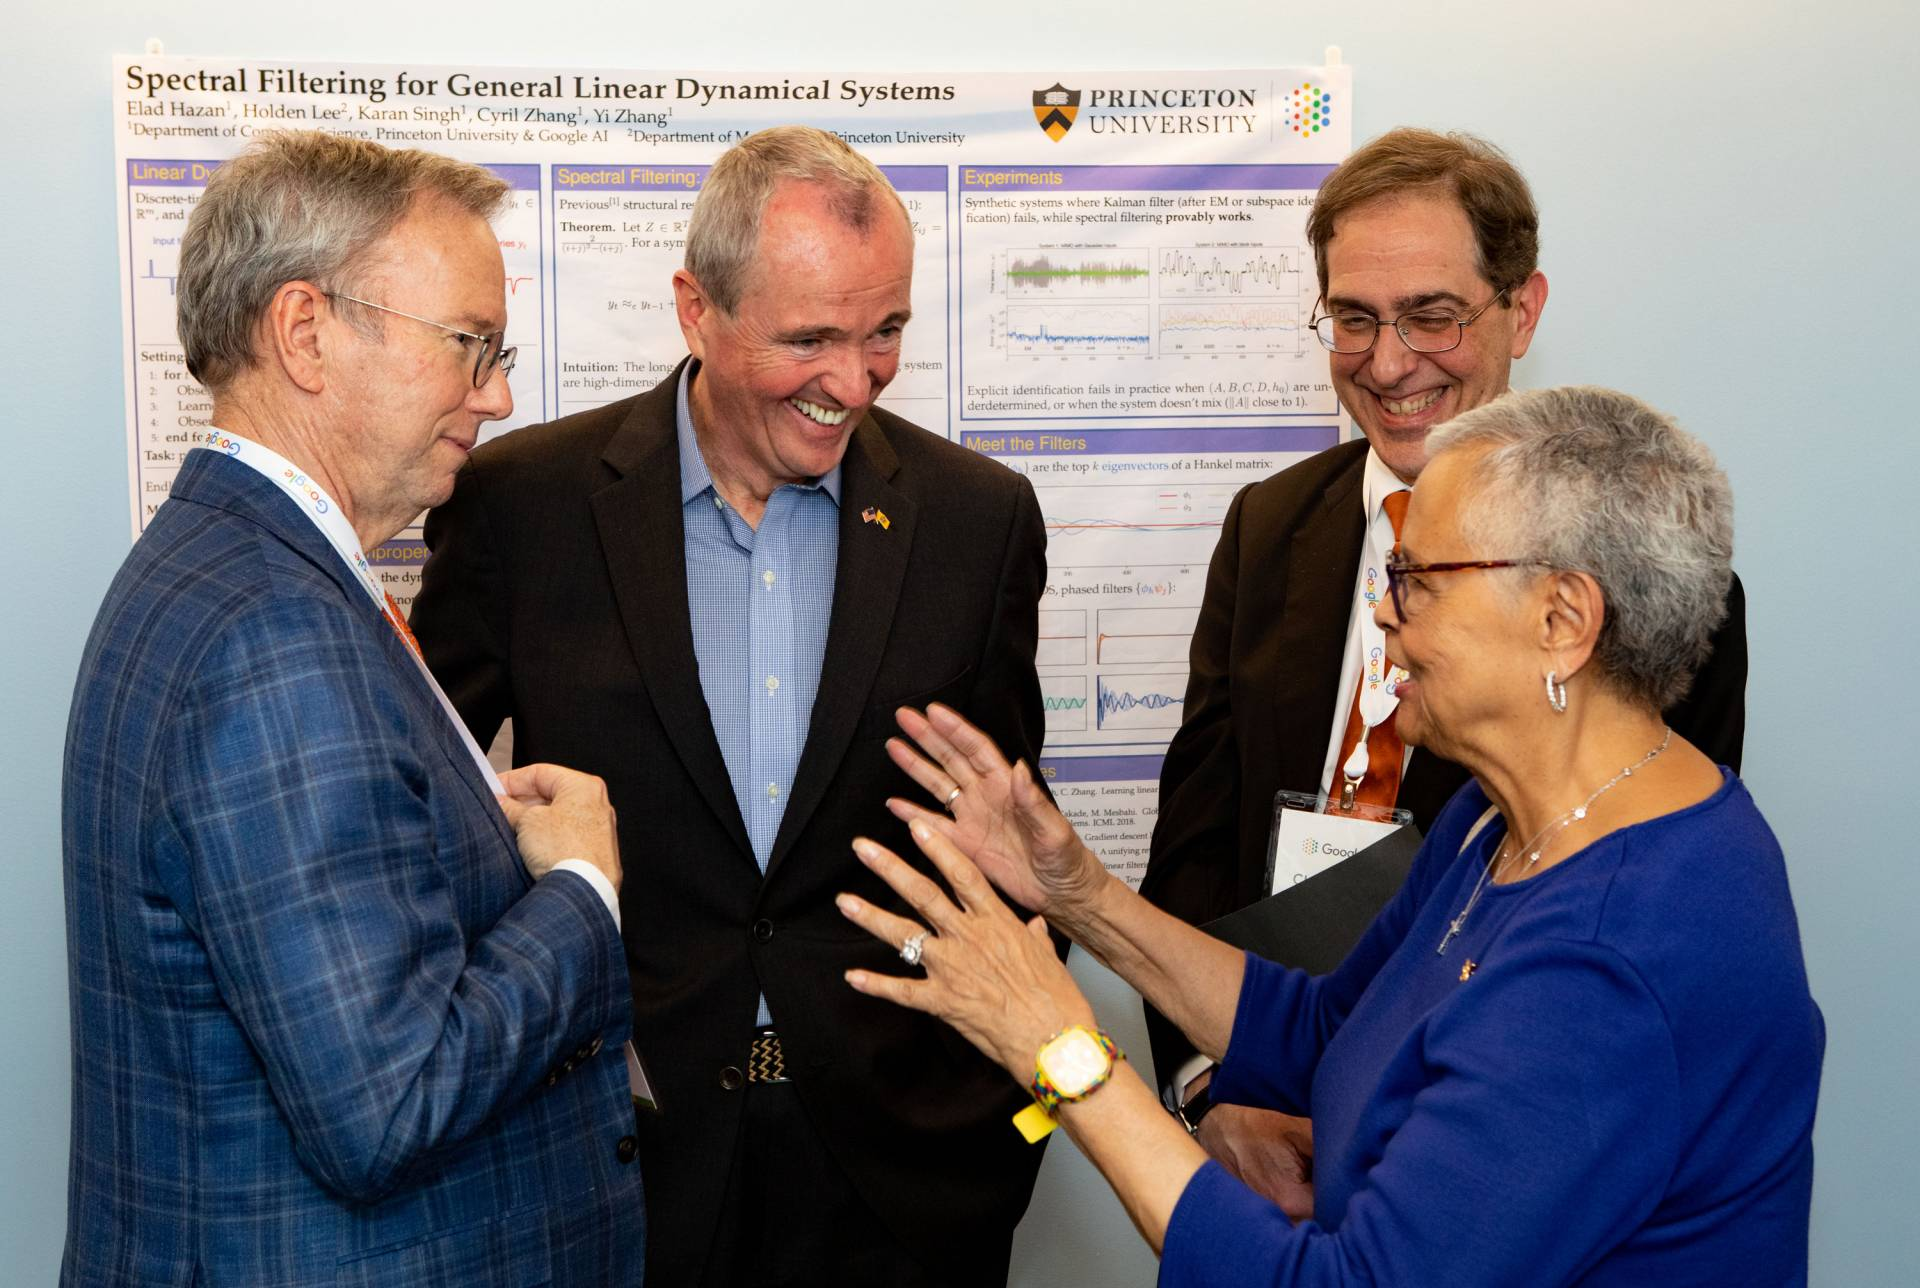 Eric Schmidt, Phil Murphy, President Eisgruber and Bonnie Watson Coleman speaking